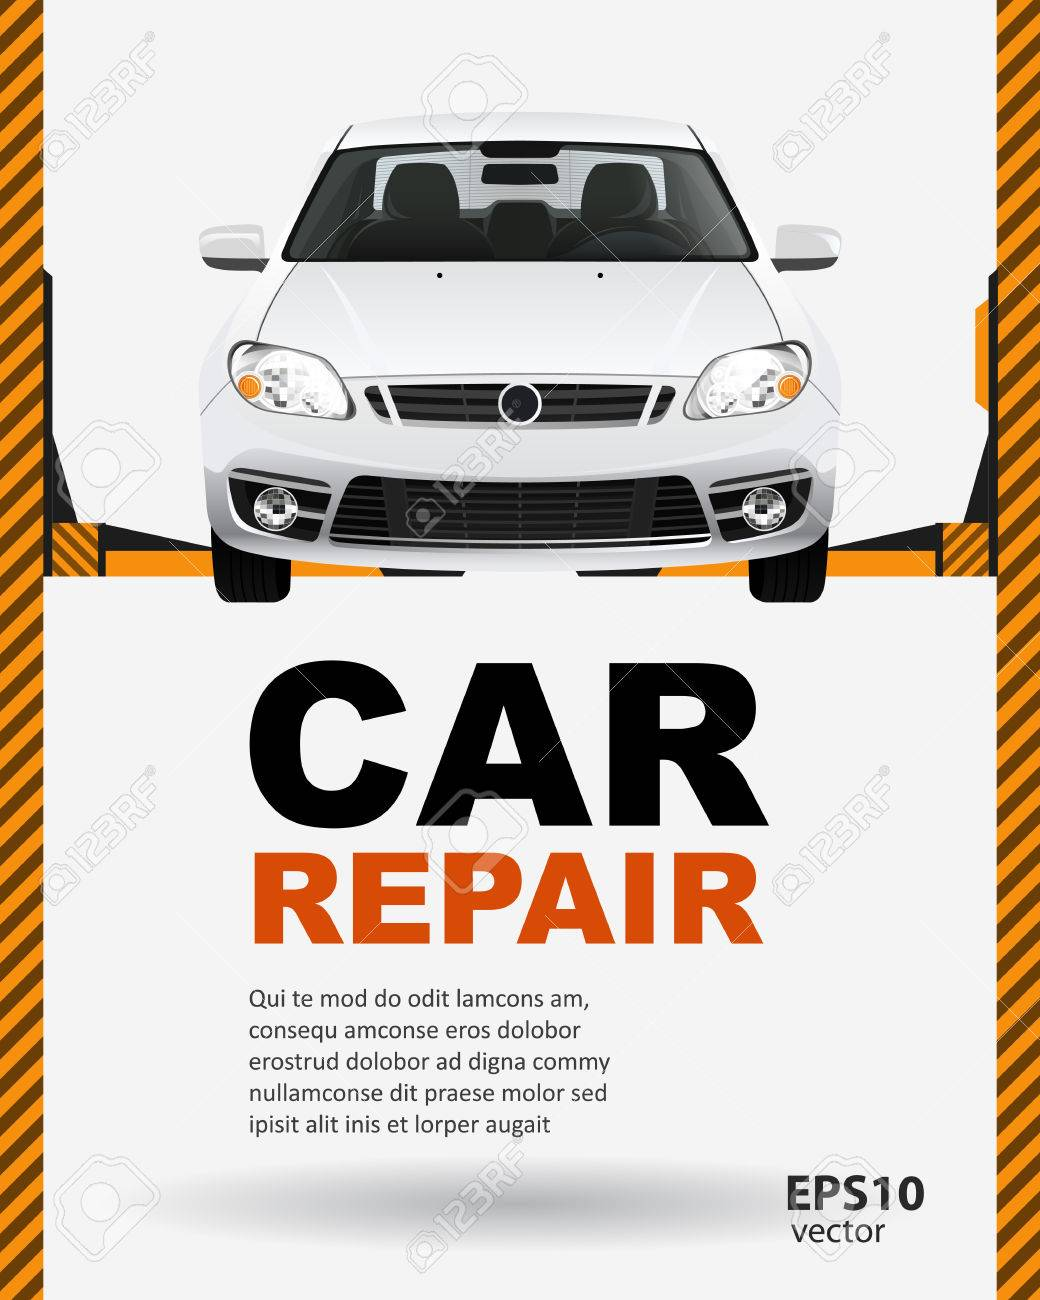 Car repair lift template layout creative color illustration background. - 50351165